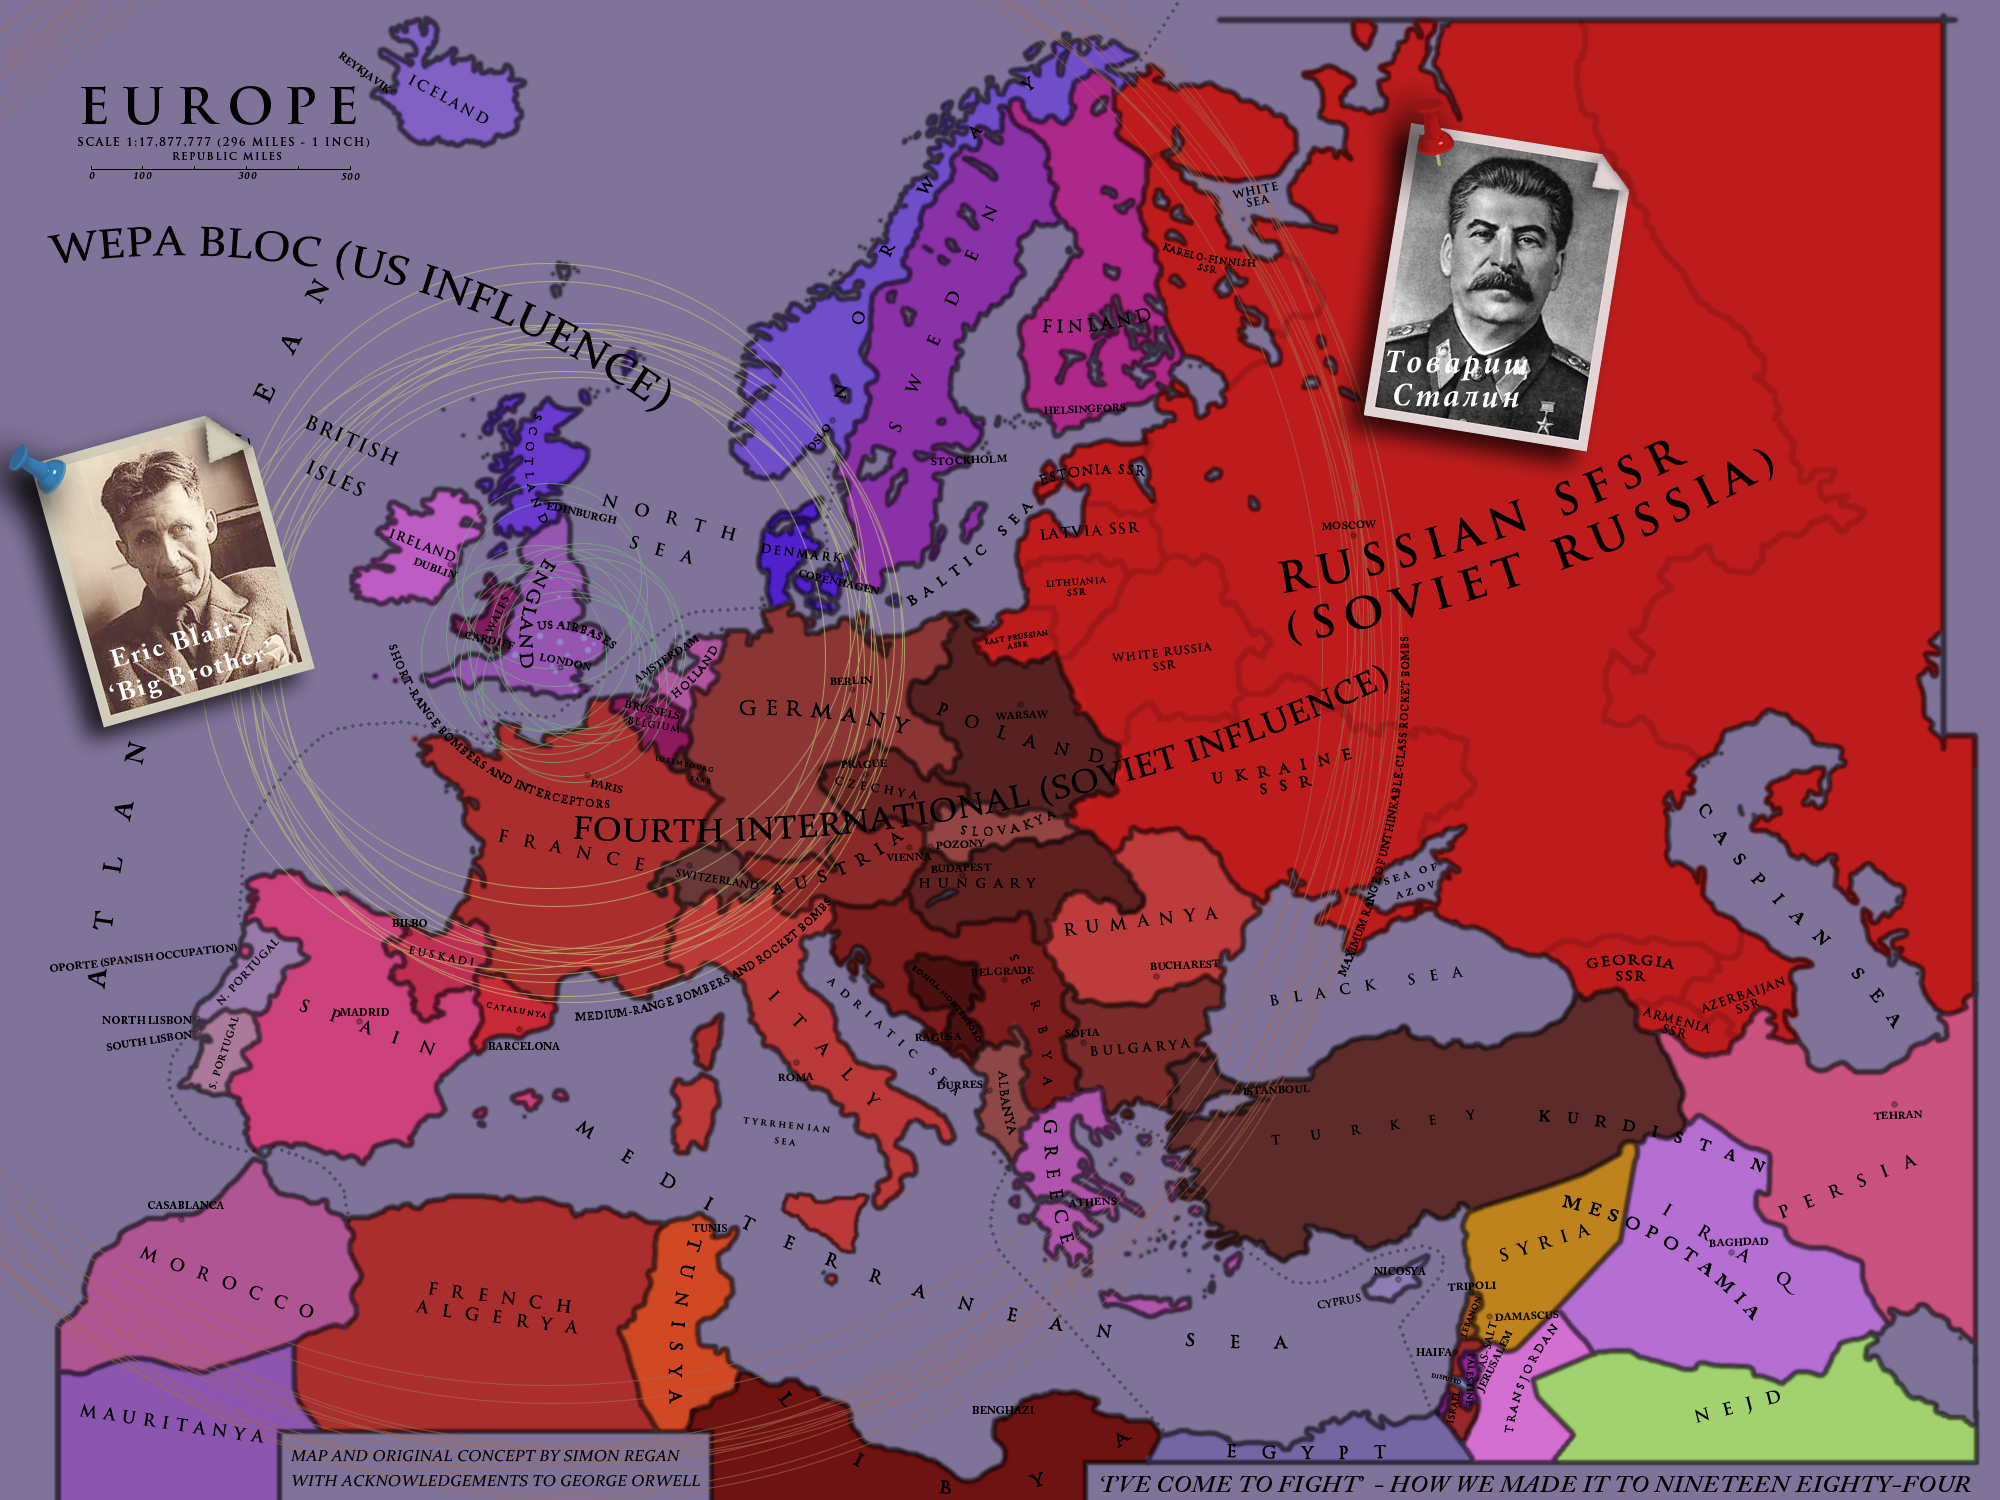 I've Come To Fight' - How We Made It To 1984 by SRegan on ...  World Maps Alternate History on alternate history london, ww2 alternate history map, alternate history united kingdom, alternate american history map, alternate history thailand, world history interactive map, alternate history united states of america, alternate history poland, alternate history mexico, alternate history us map, alternate history europe map, alternate history south america, 3rd reich alternate history map, alternate history india, alternate history countries, alternate history austria, alternate history ww1, alternate history asia, alternate history egypt, alternate history hungary,